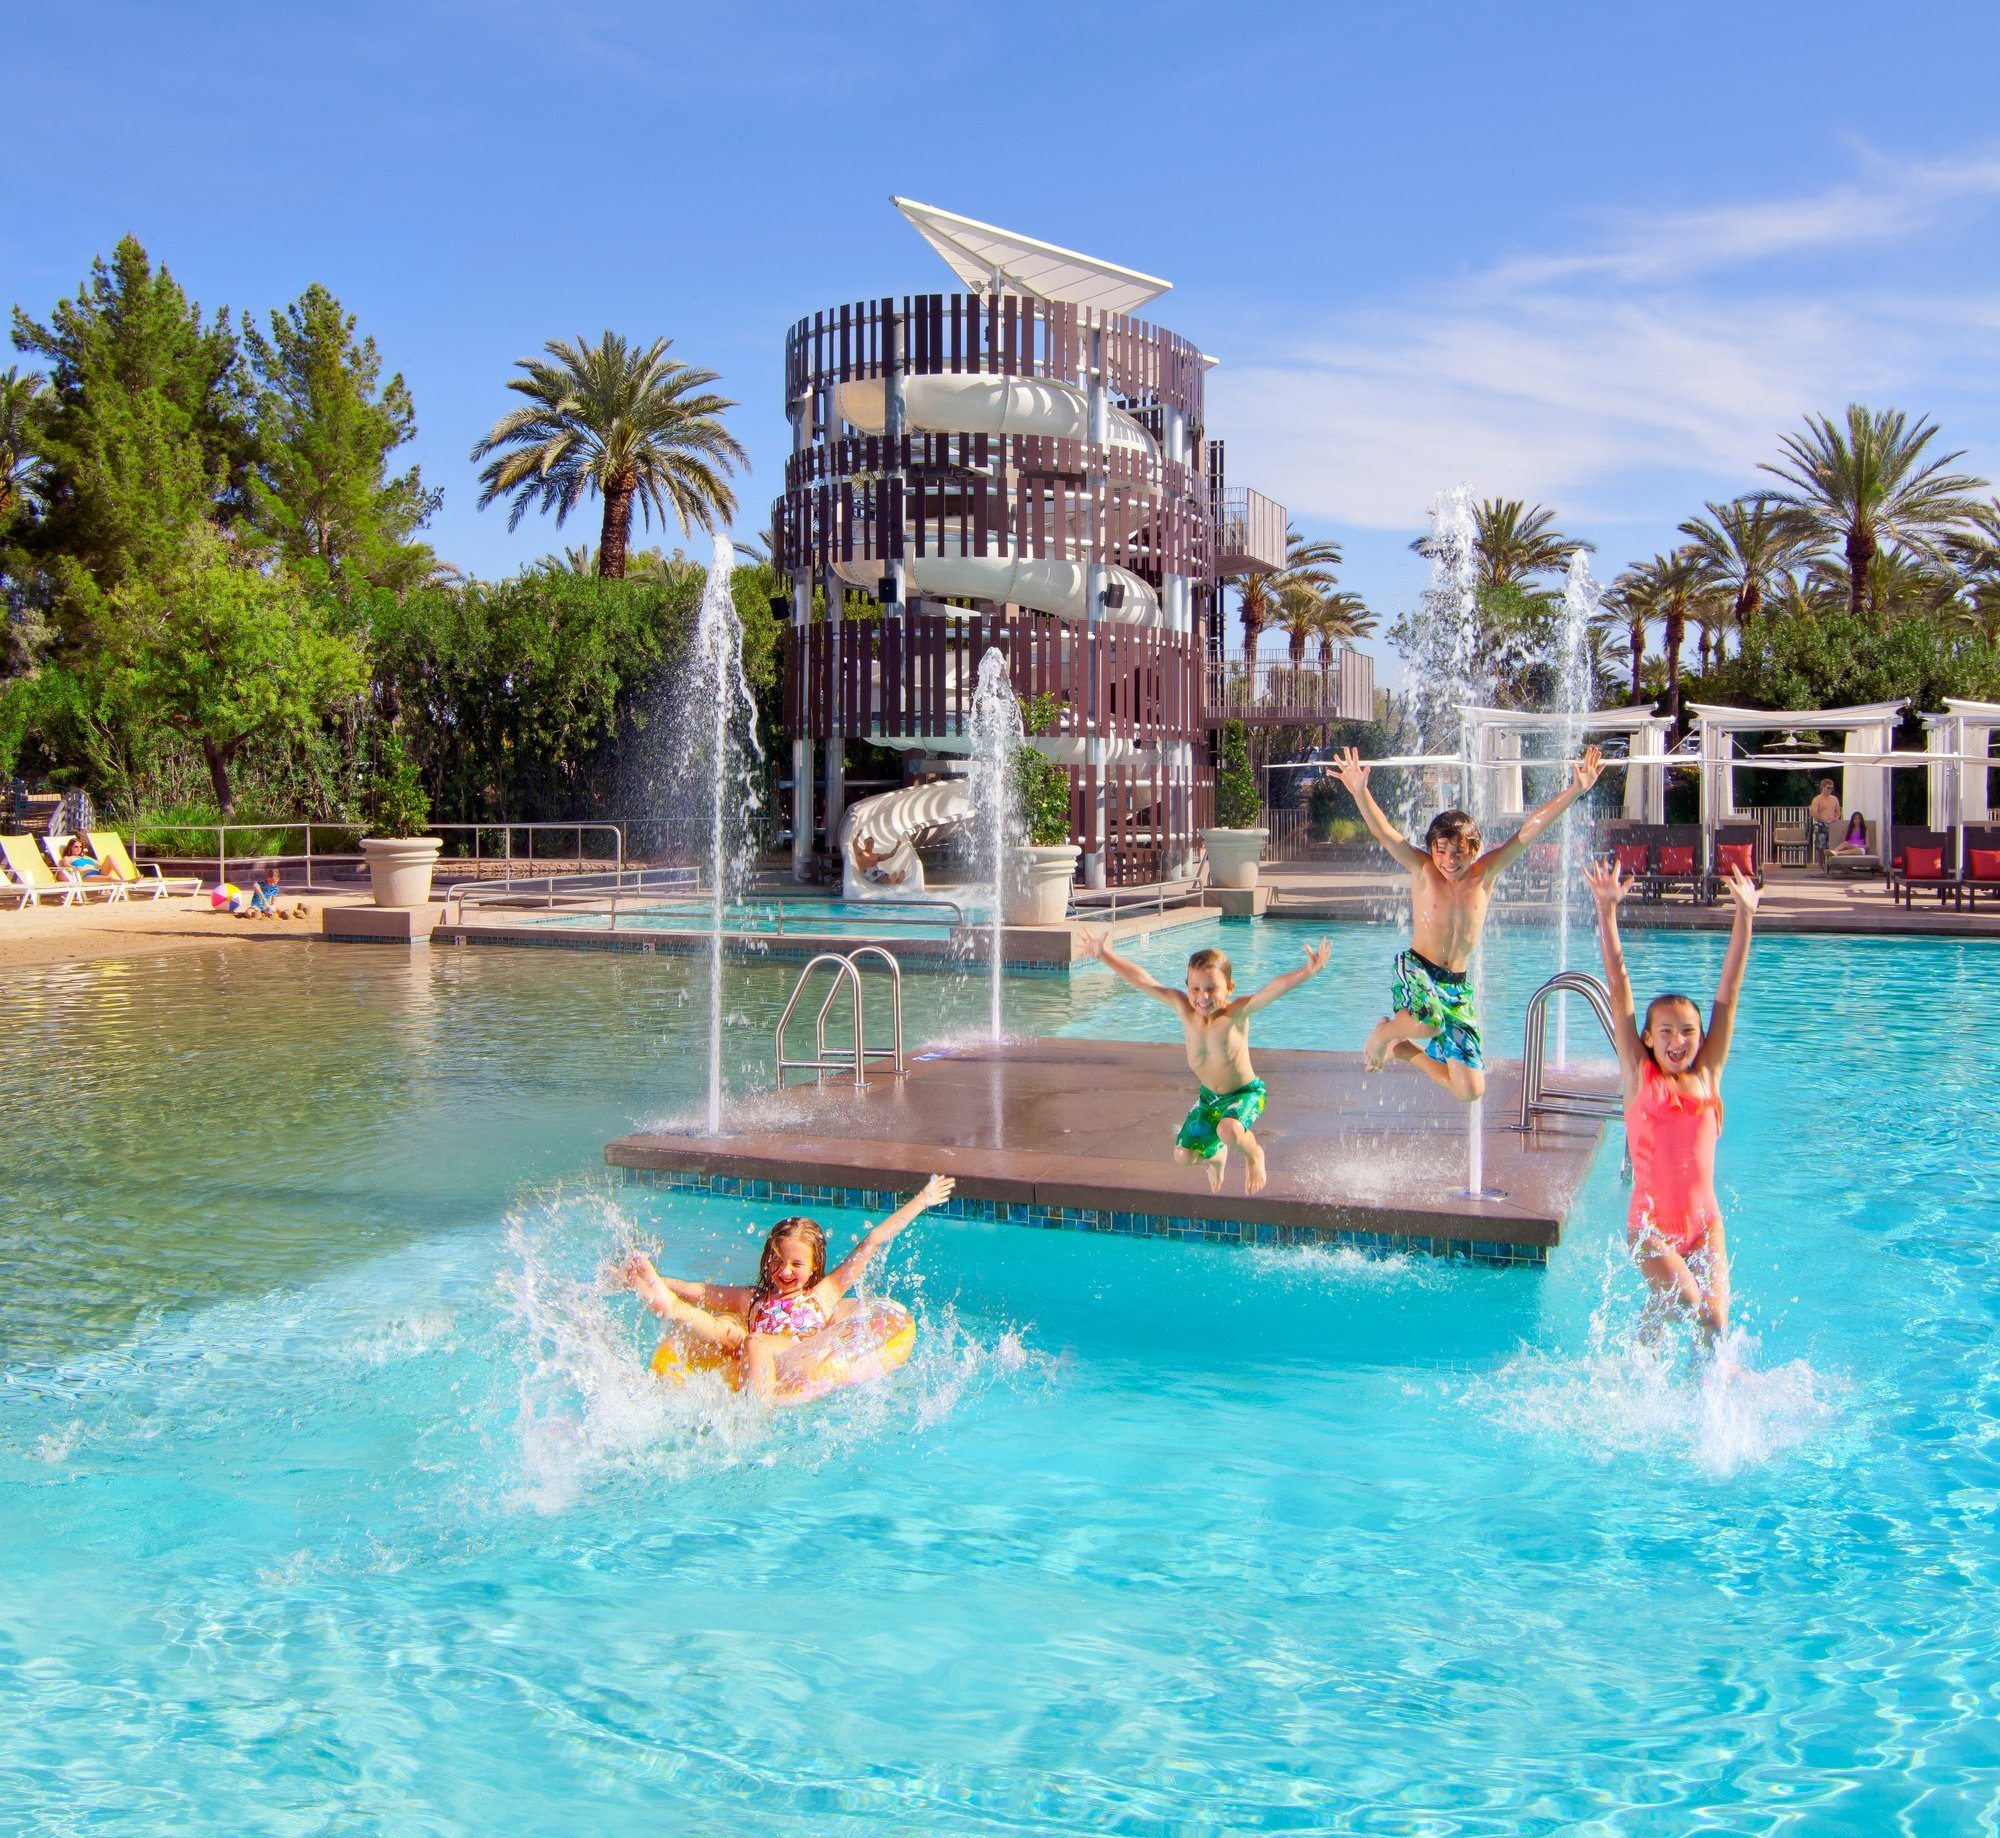 Waterslide and splash pad at Hyatt Regency Resort & Spa at Gainey Ranch